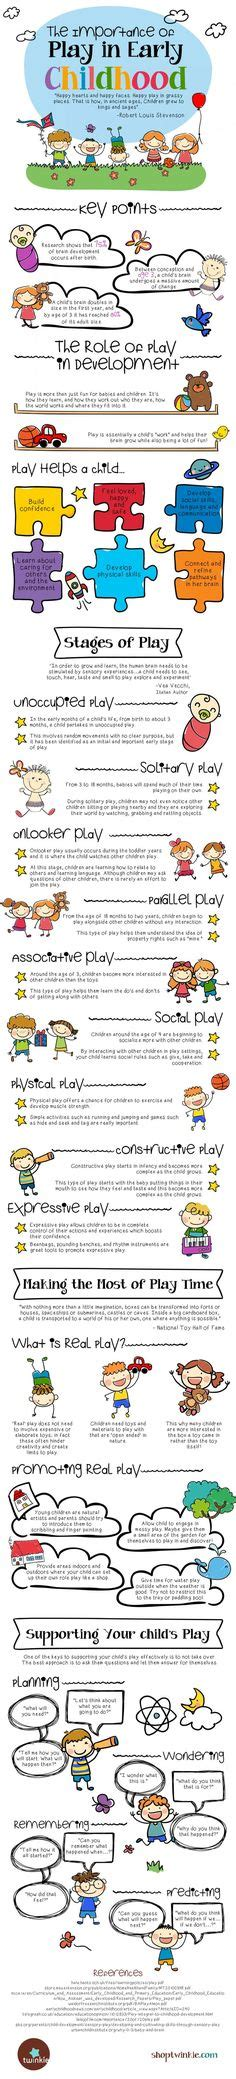 preschool benefits research 1000 images about ideas for early childhood teachers on 955